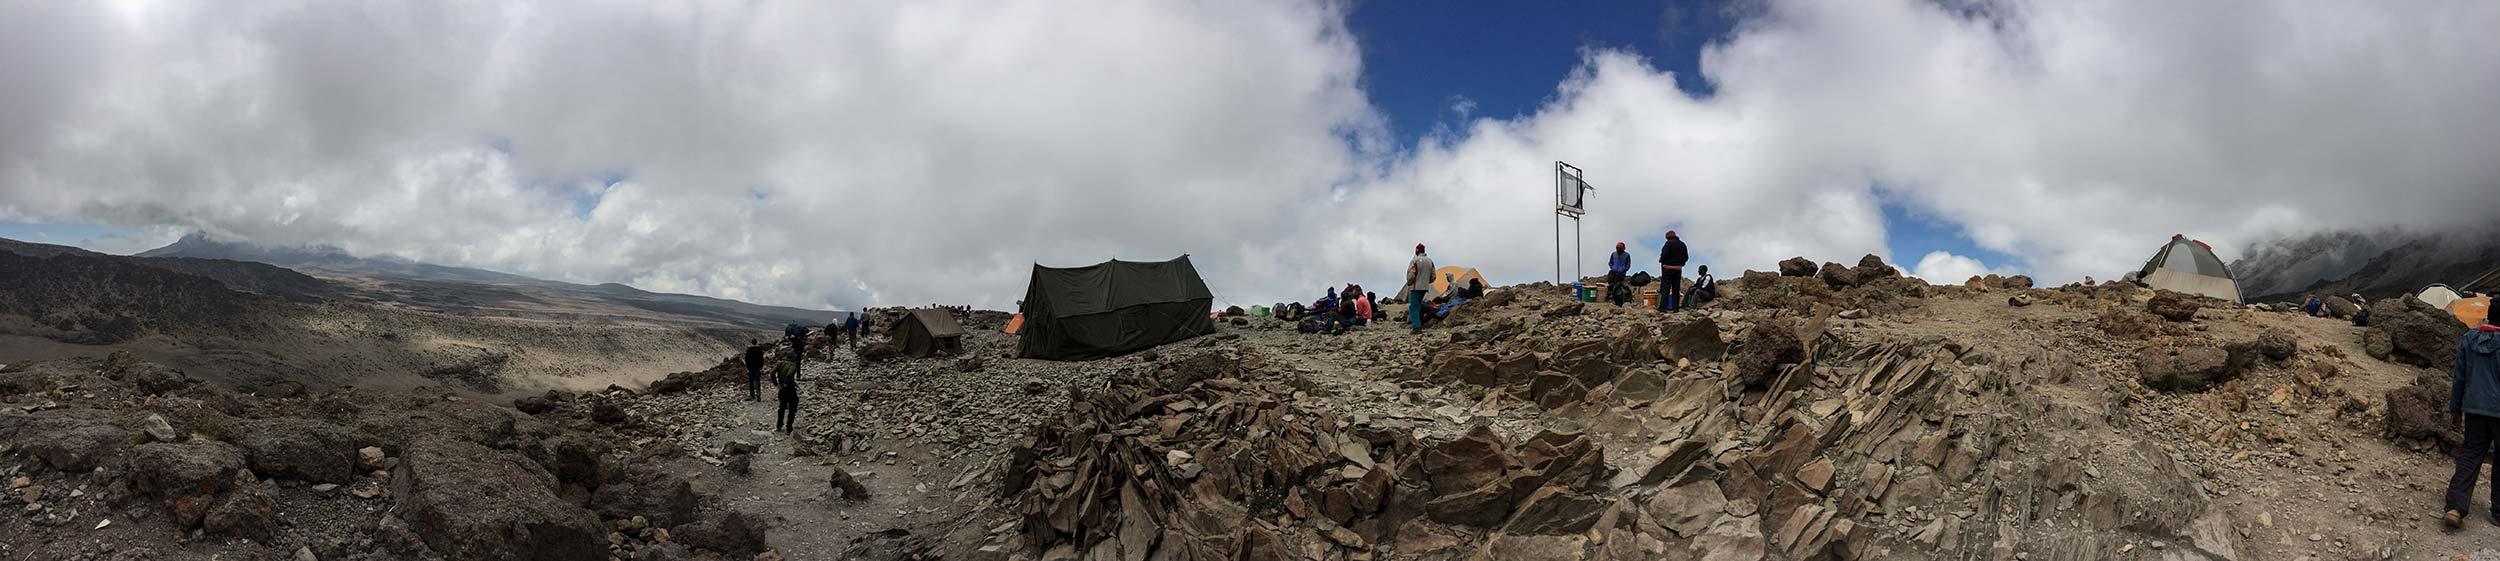 Barufu Camp is situated on a ridge with hardly any flat ground at all. It is barren, and bleak. The air is thin, but the excitement is frenetic.